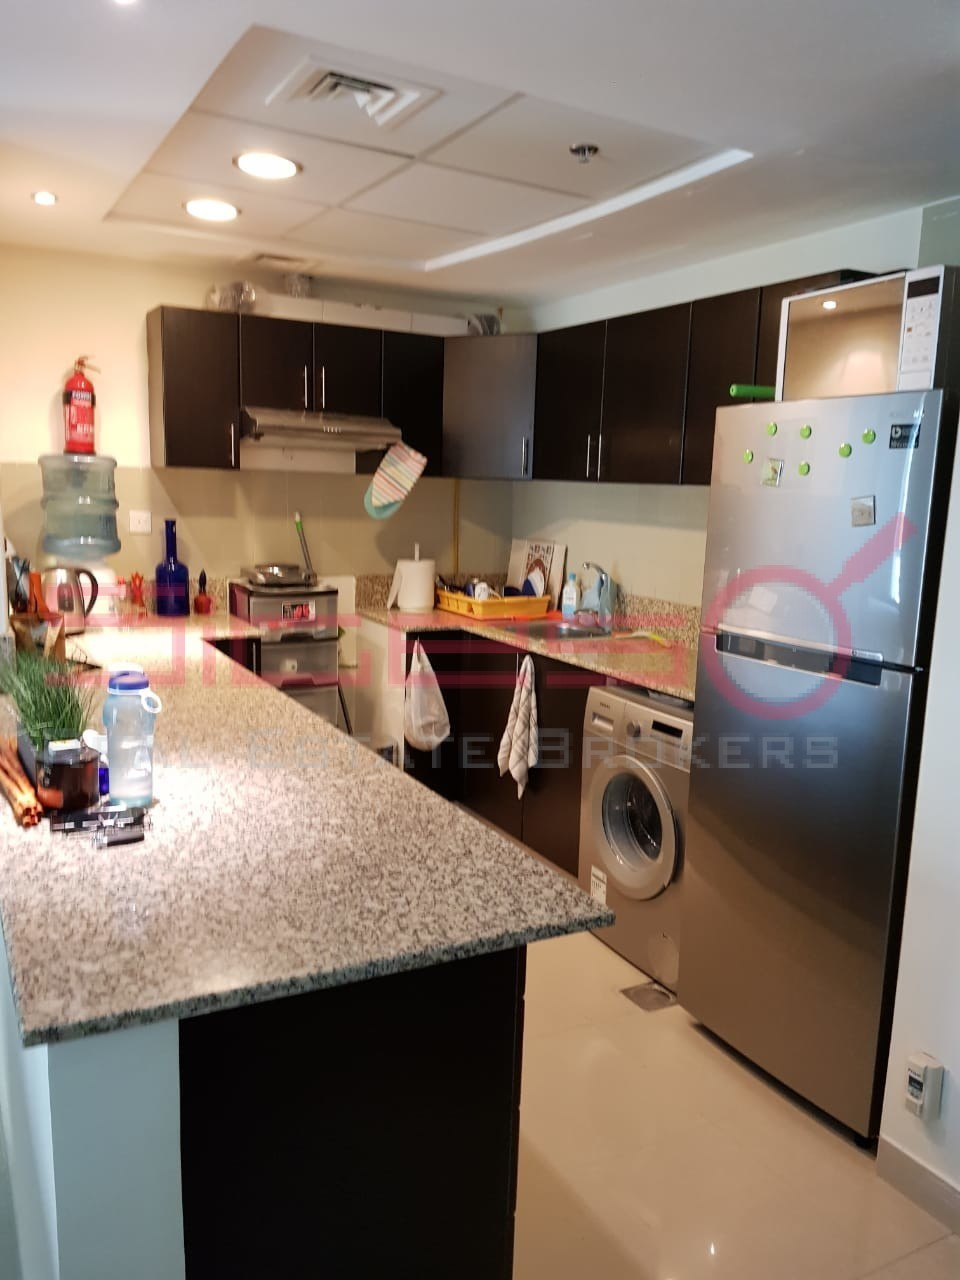 grab-1-br-for-rent-in-sports-city